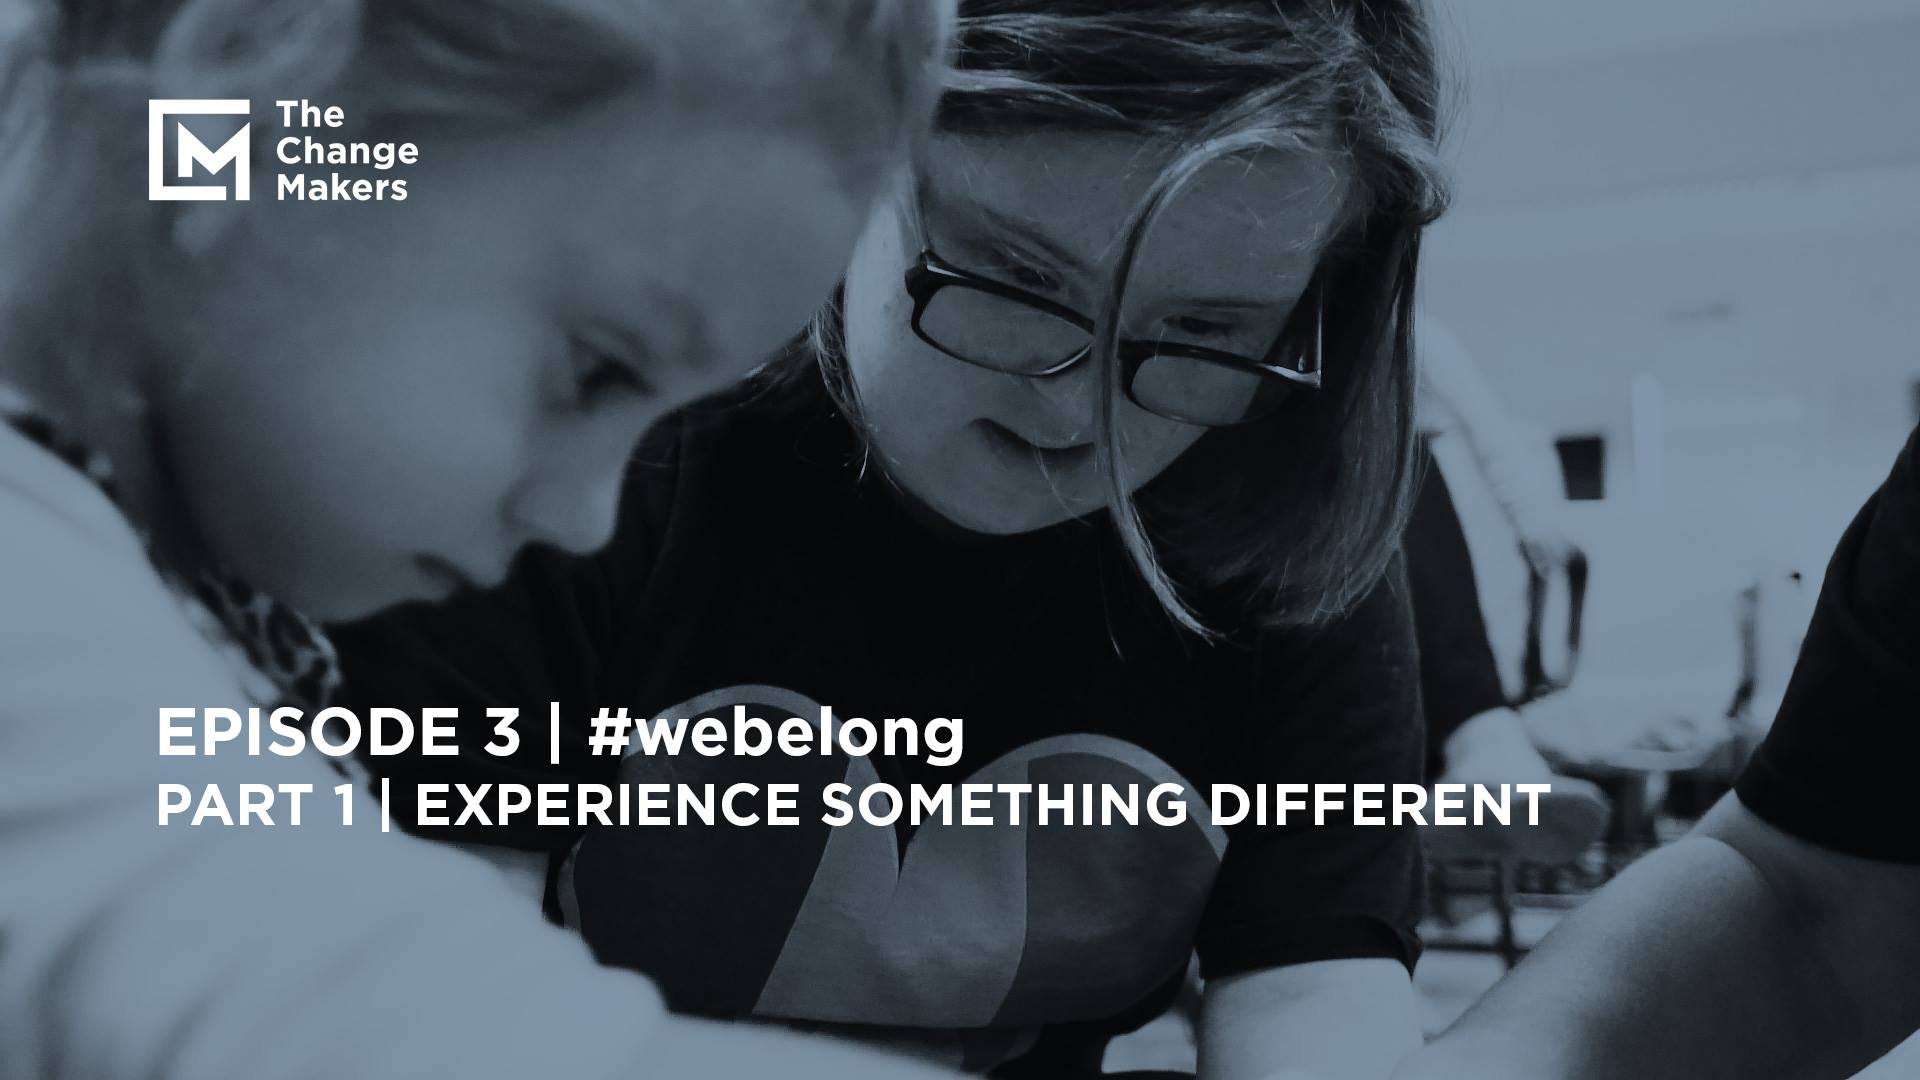 #webelong / Part 1 / Experience Something Different / The Change Makers / Episode 3